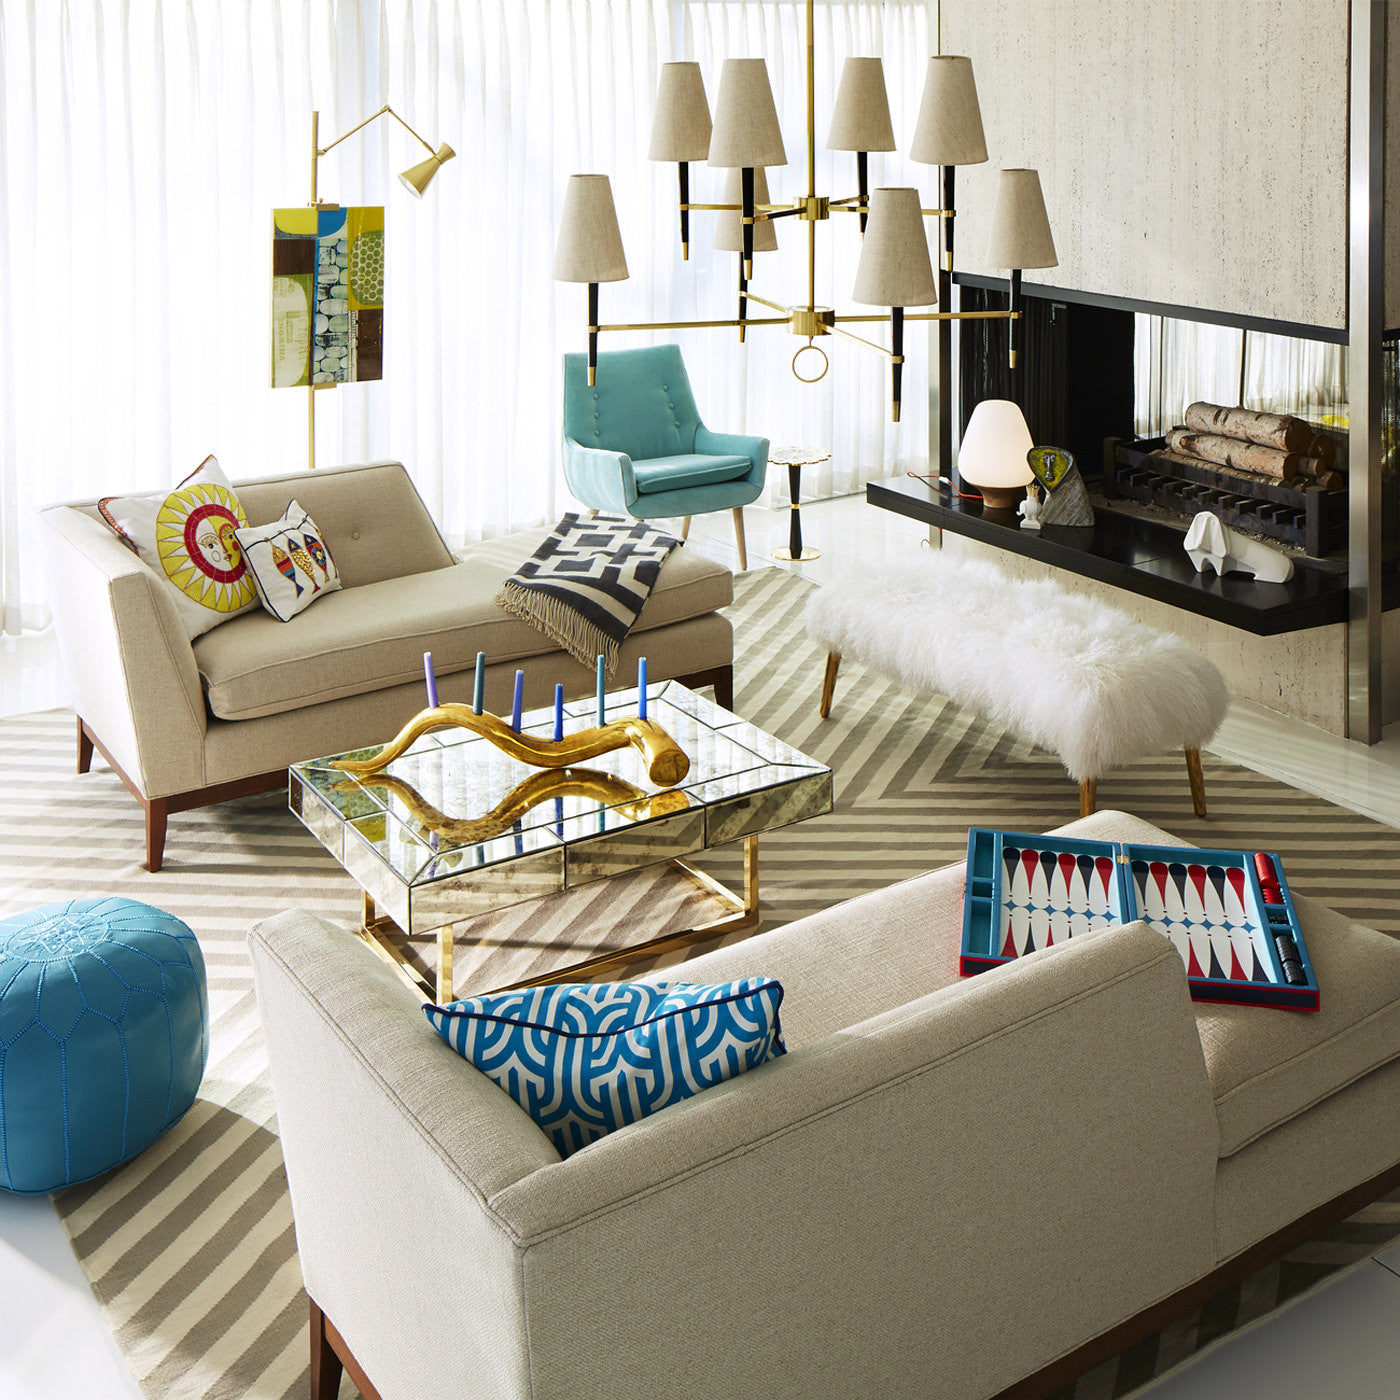 Jonathan Adler presents the Ventana Two-Tier Chandelier in living room